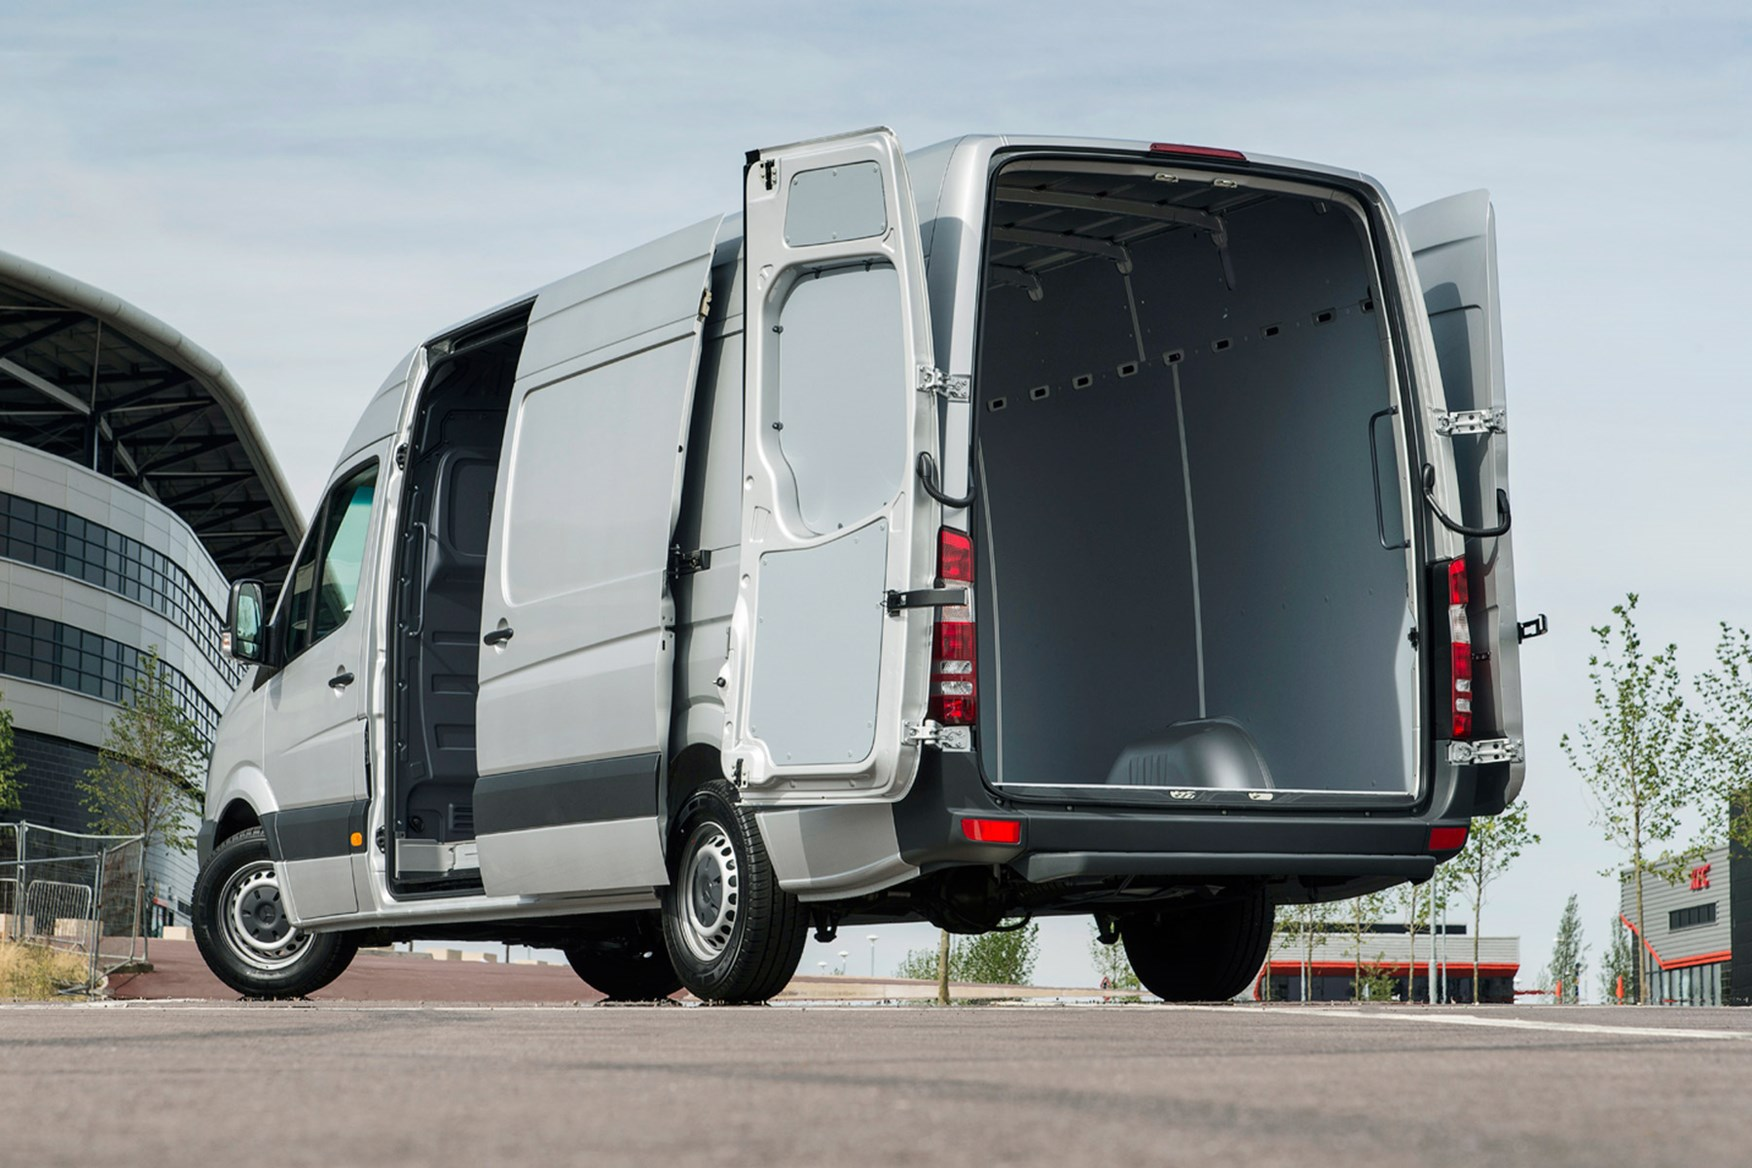 Mercedes-Benz Sprinter full review on Parkers Vans - load area access